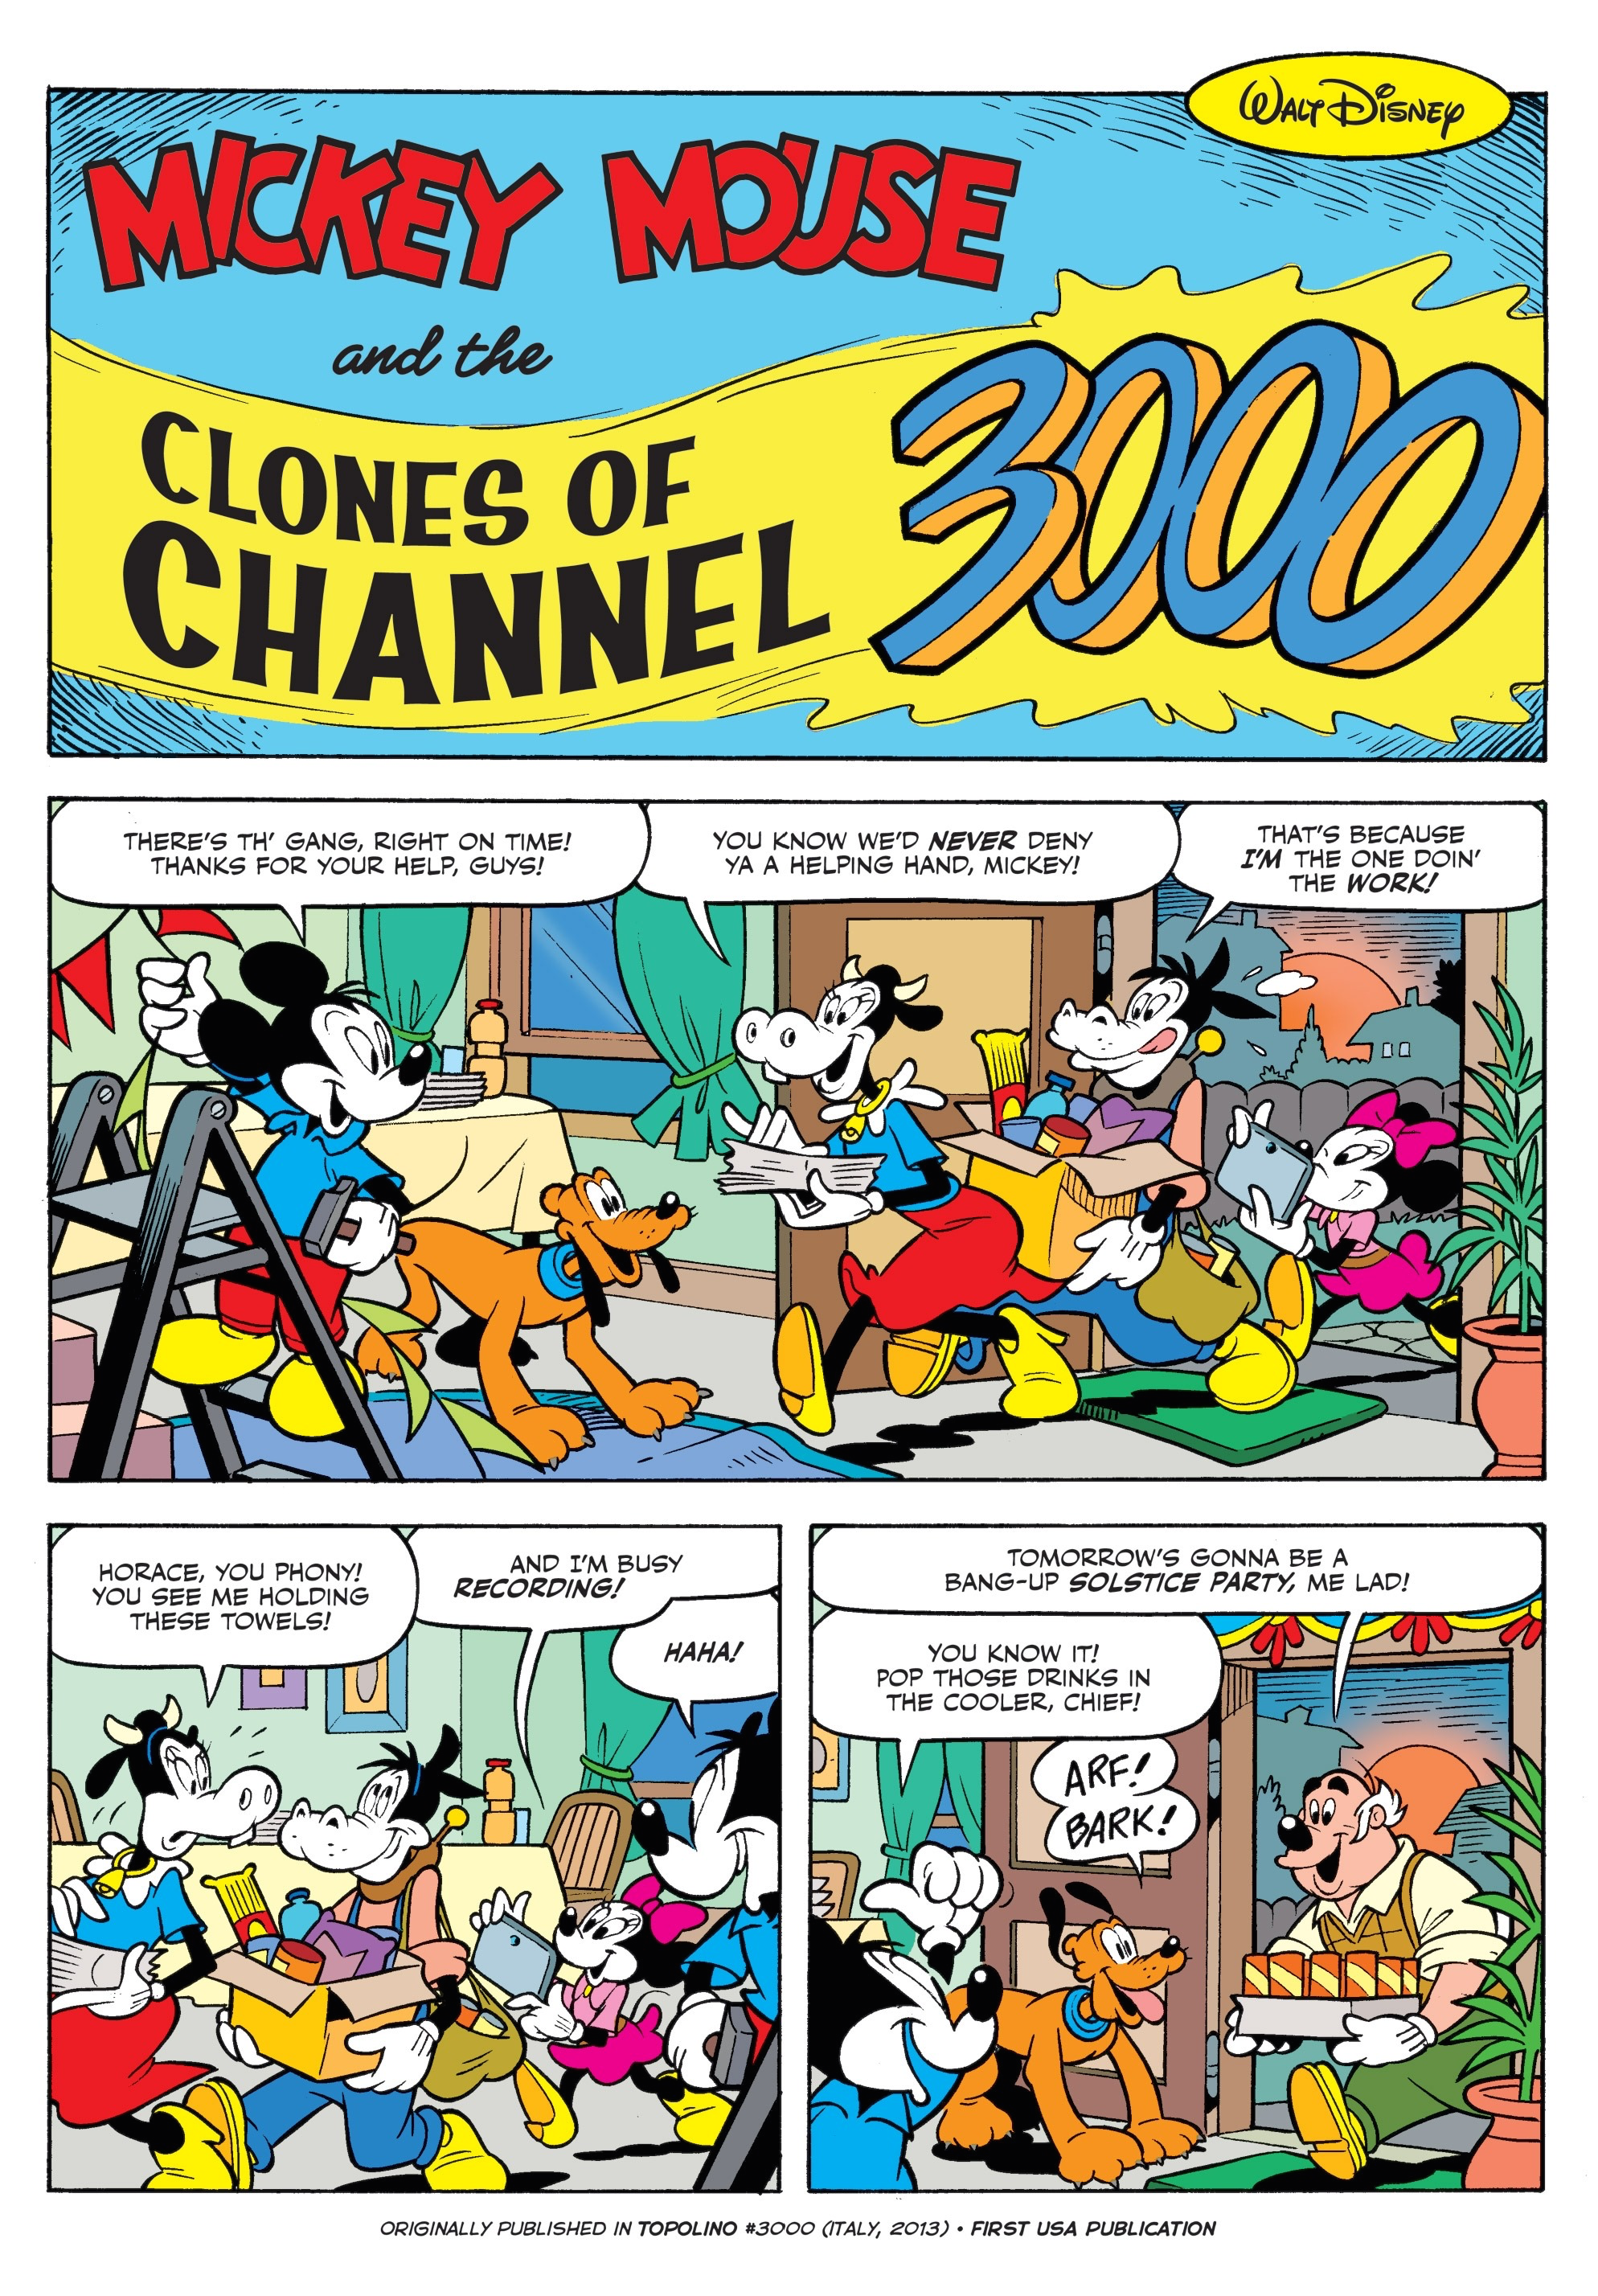 Mickey Mouse and the Clones of Channel 3000